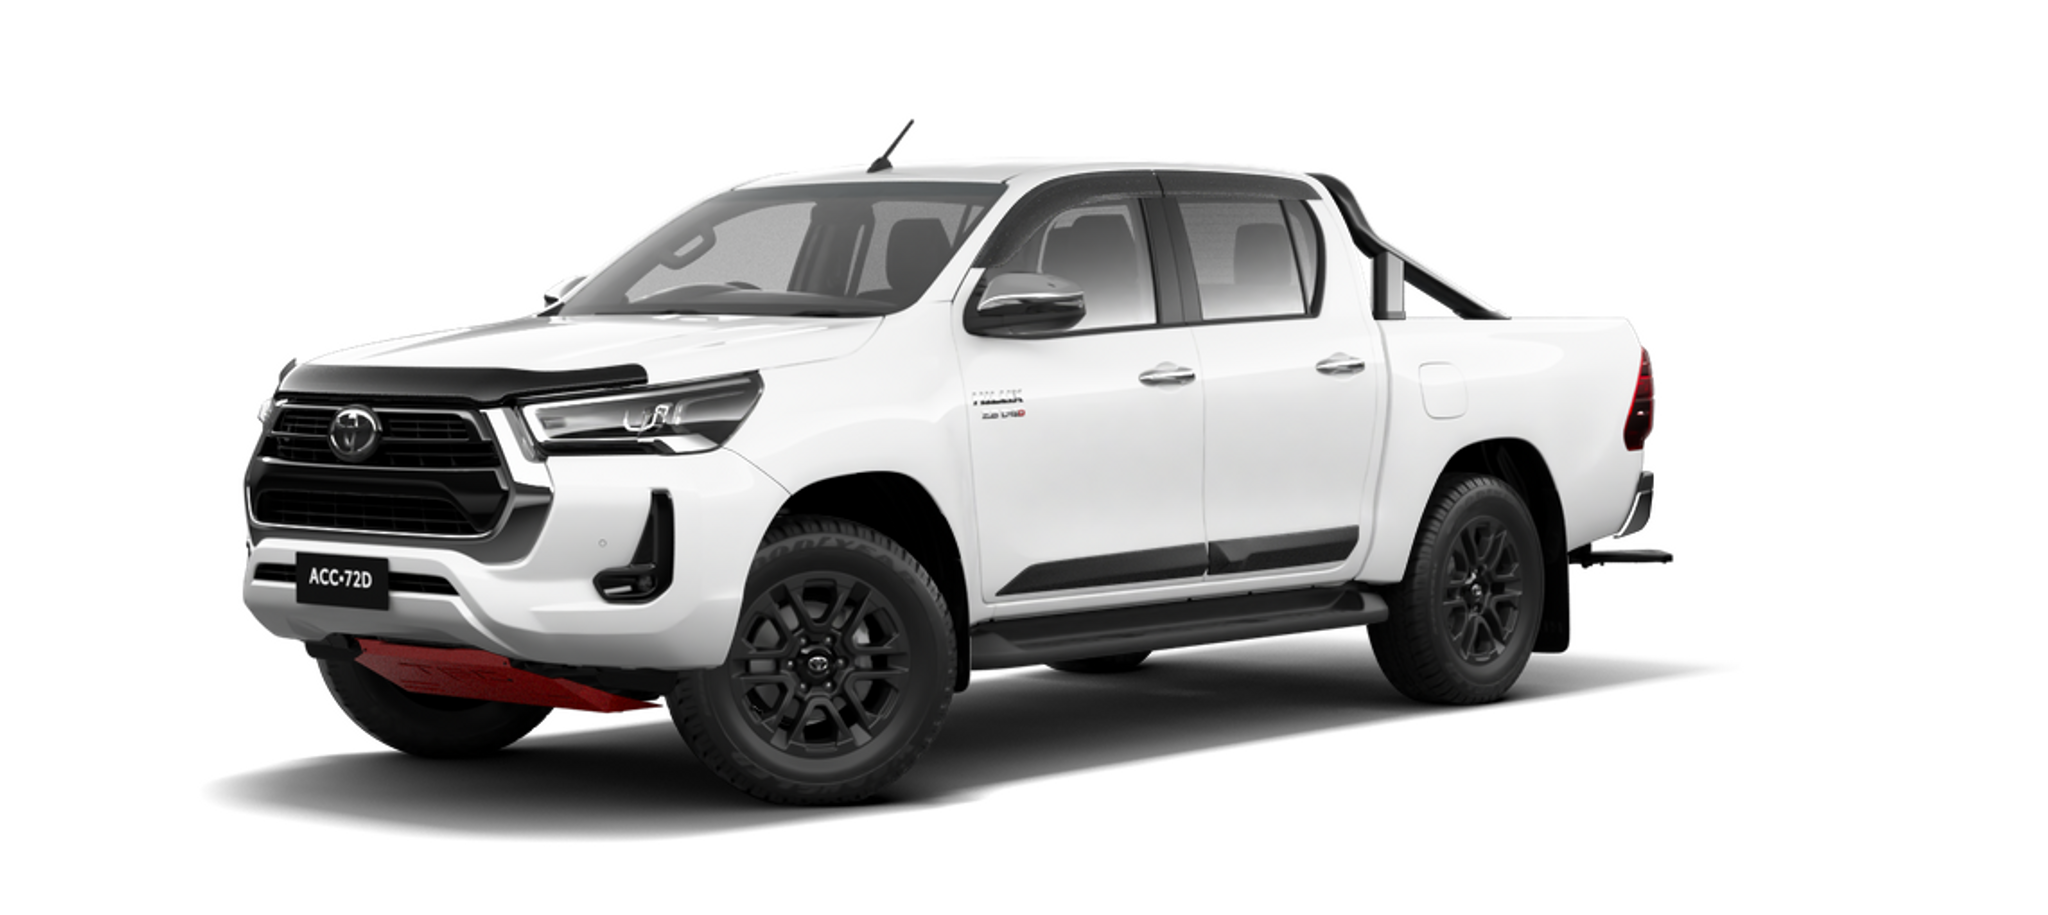 2020 HiLux New accessories - Make it yours | Phil Gilbert Toyota